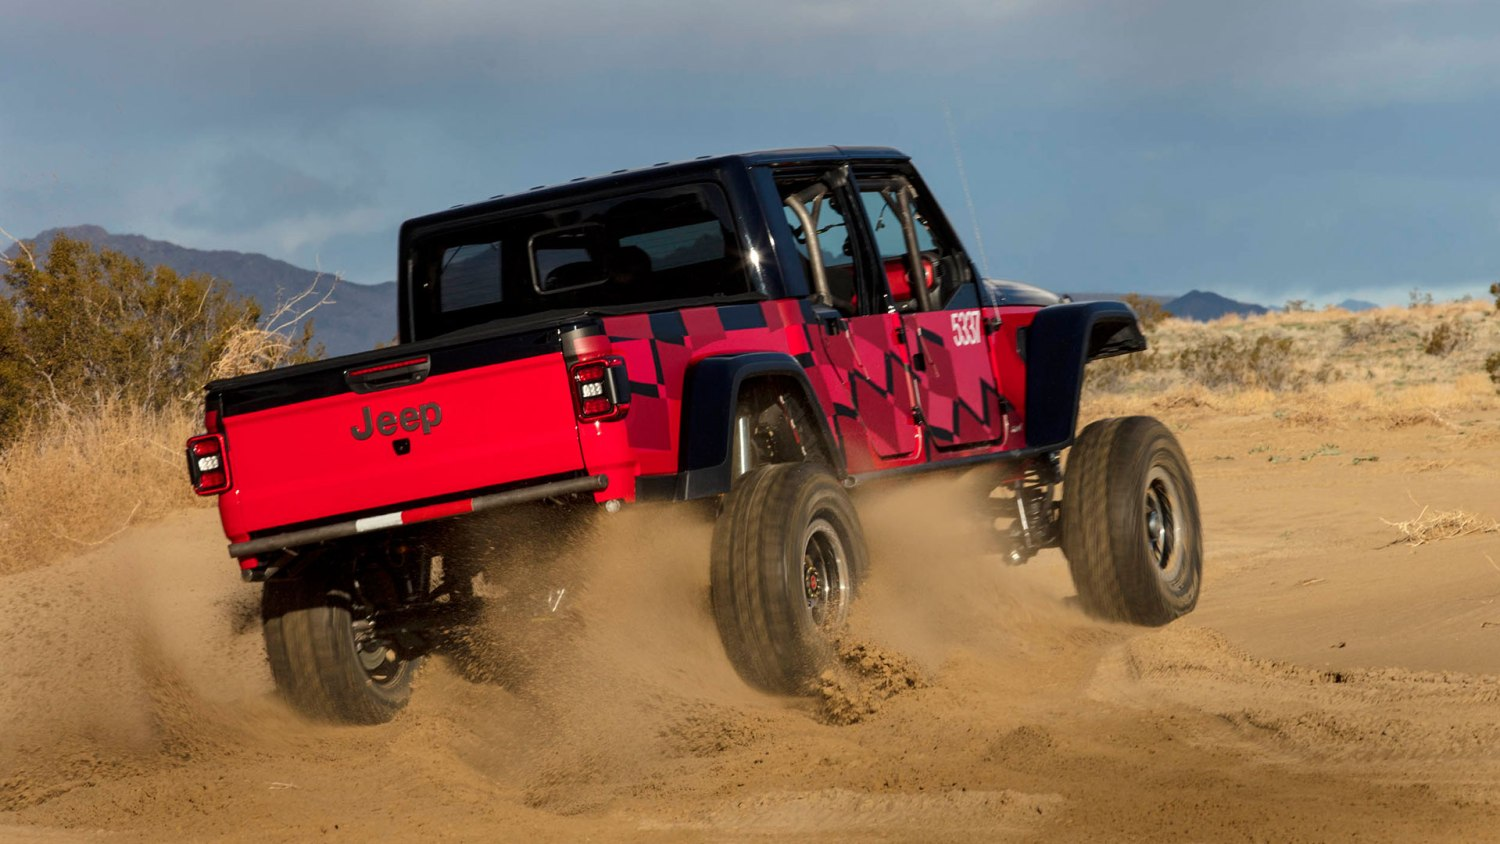 2020 Jeep Gladiator King of the Hammers Challenge